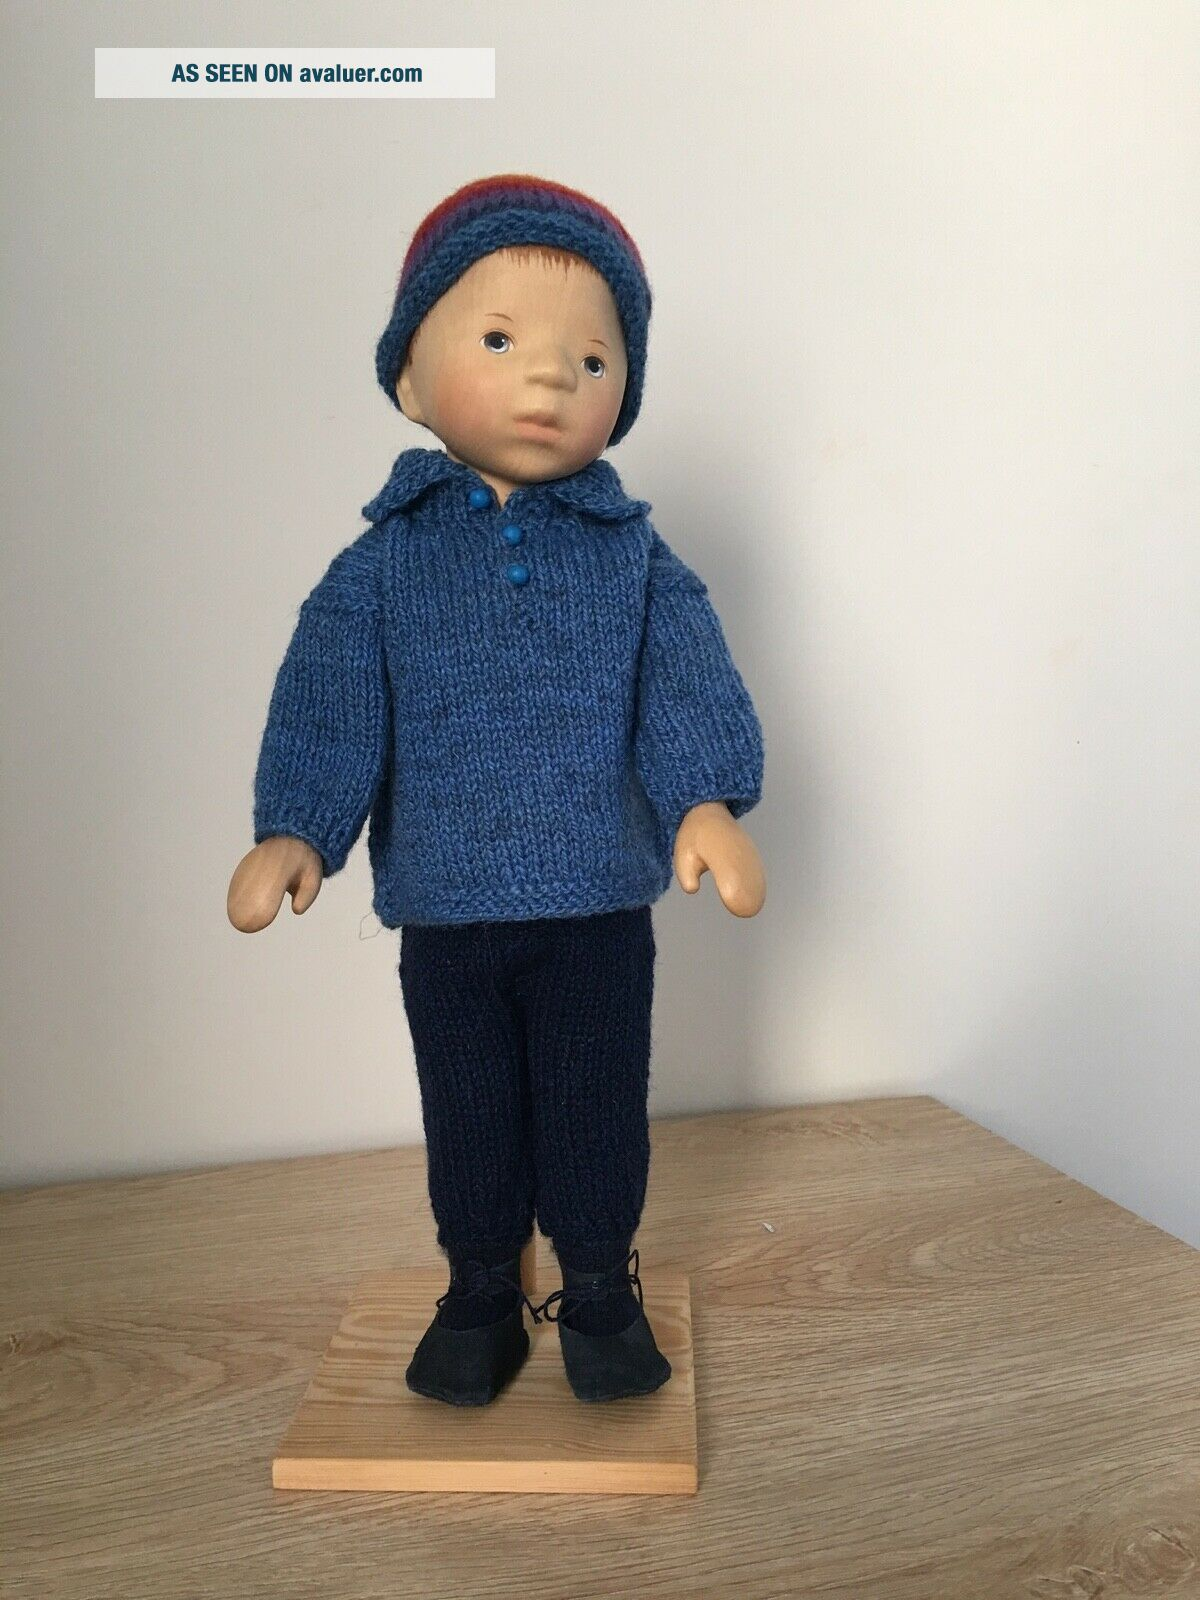 RELISTED: Handcrafted wooden doll by Elisabeth Pongratz